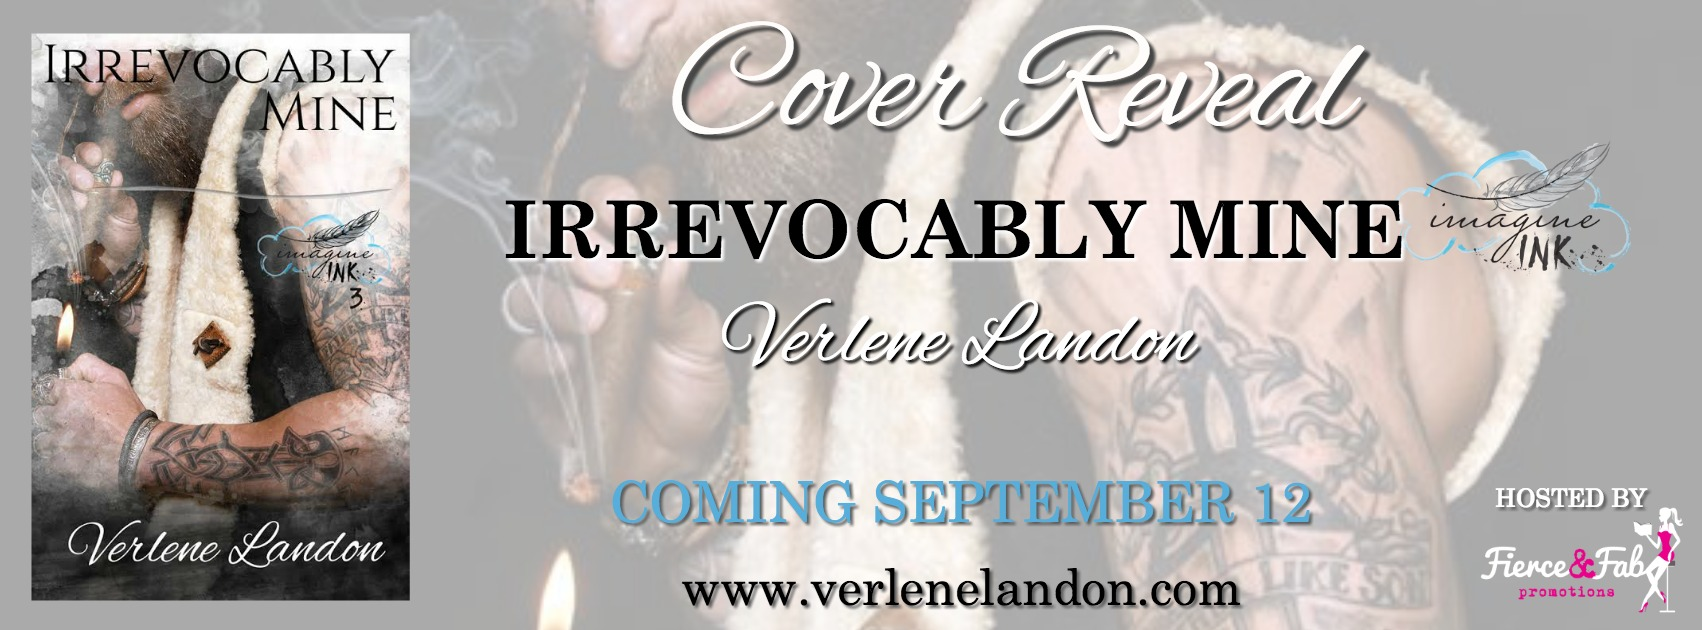 Irrevocably Mine Cover Reveal Banner r2